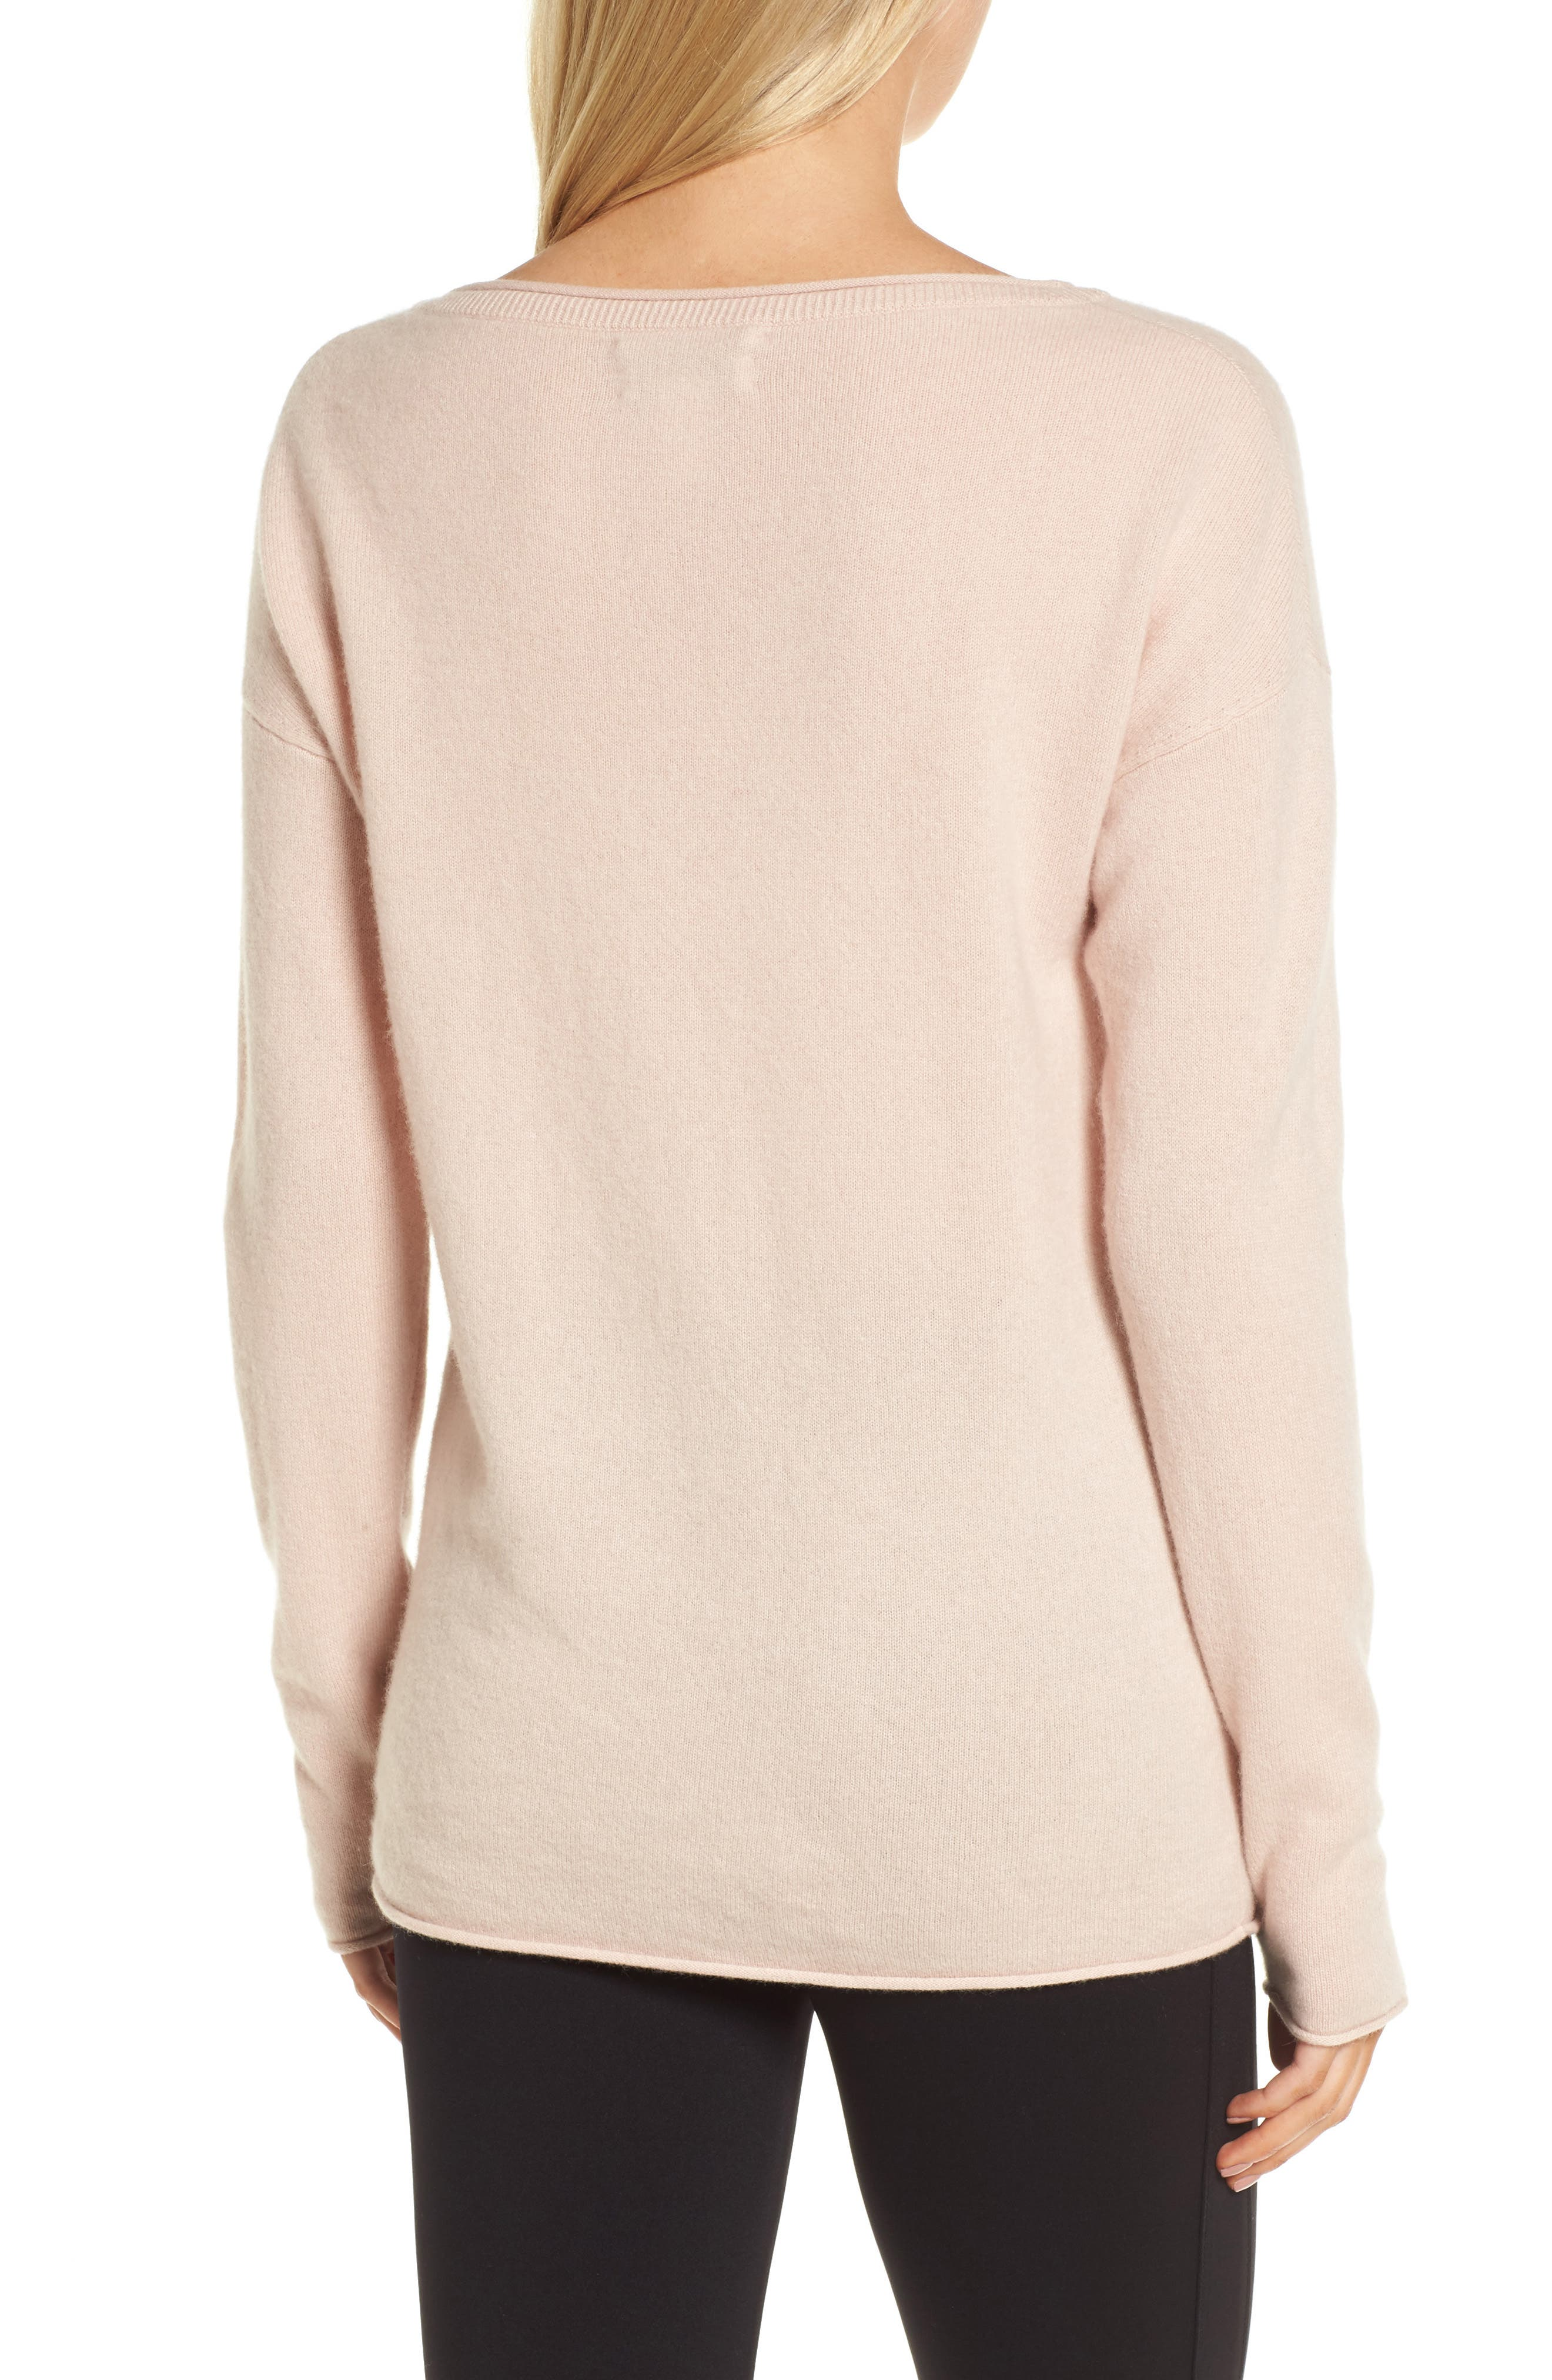 Boiled Cashmere Sweater,                             Alternate thumbnail 2, color,                             Pink Peach